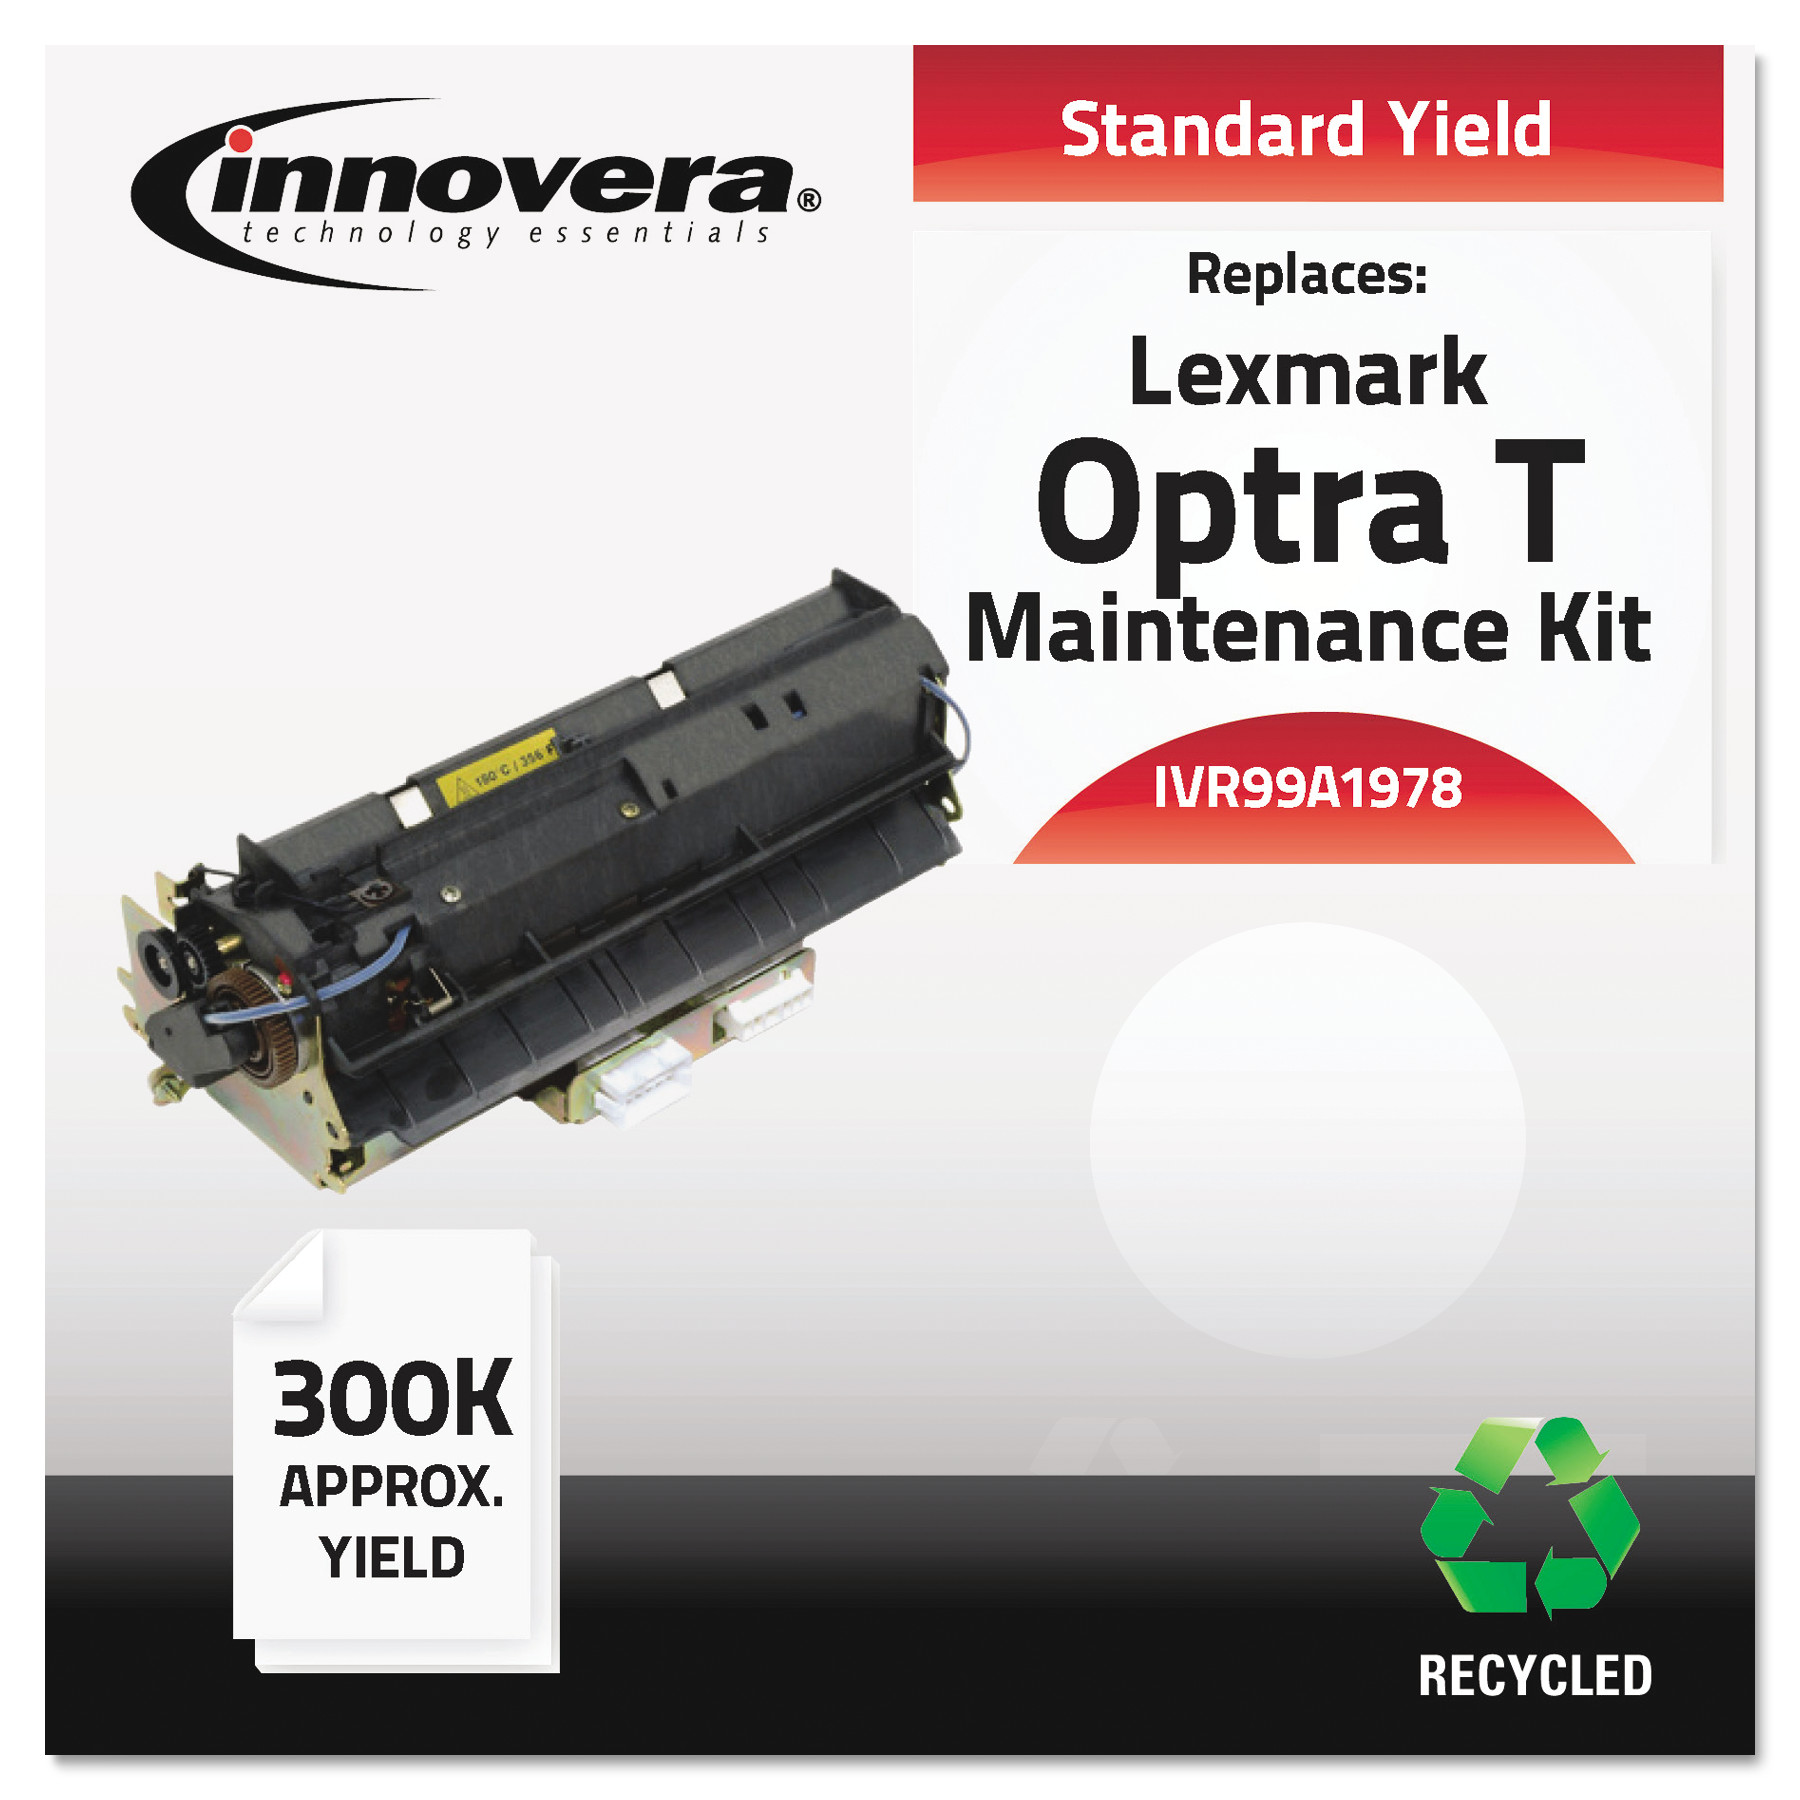 Innovera Remanufactured 99A1978 (T614) Maintenance Kit